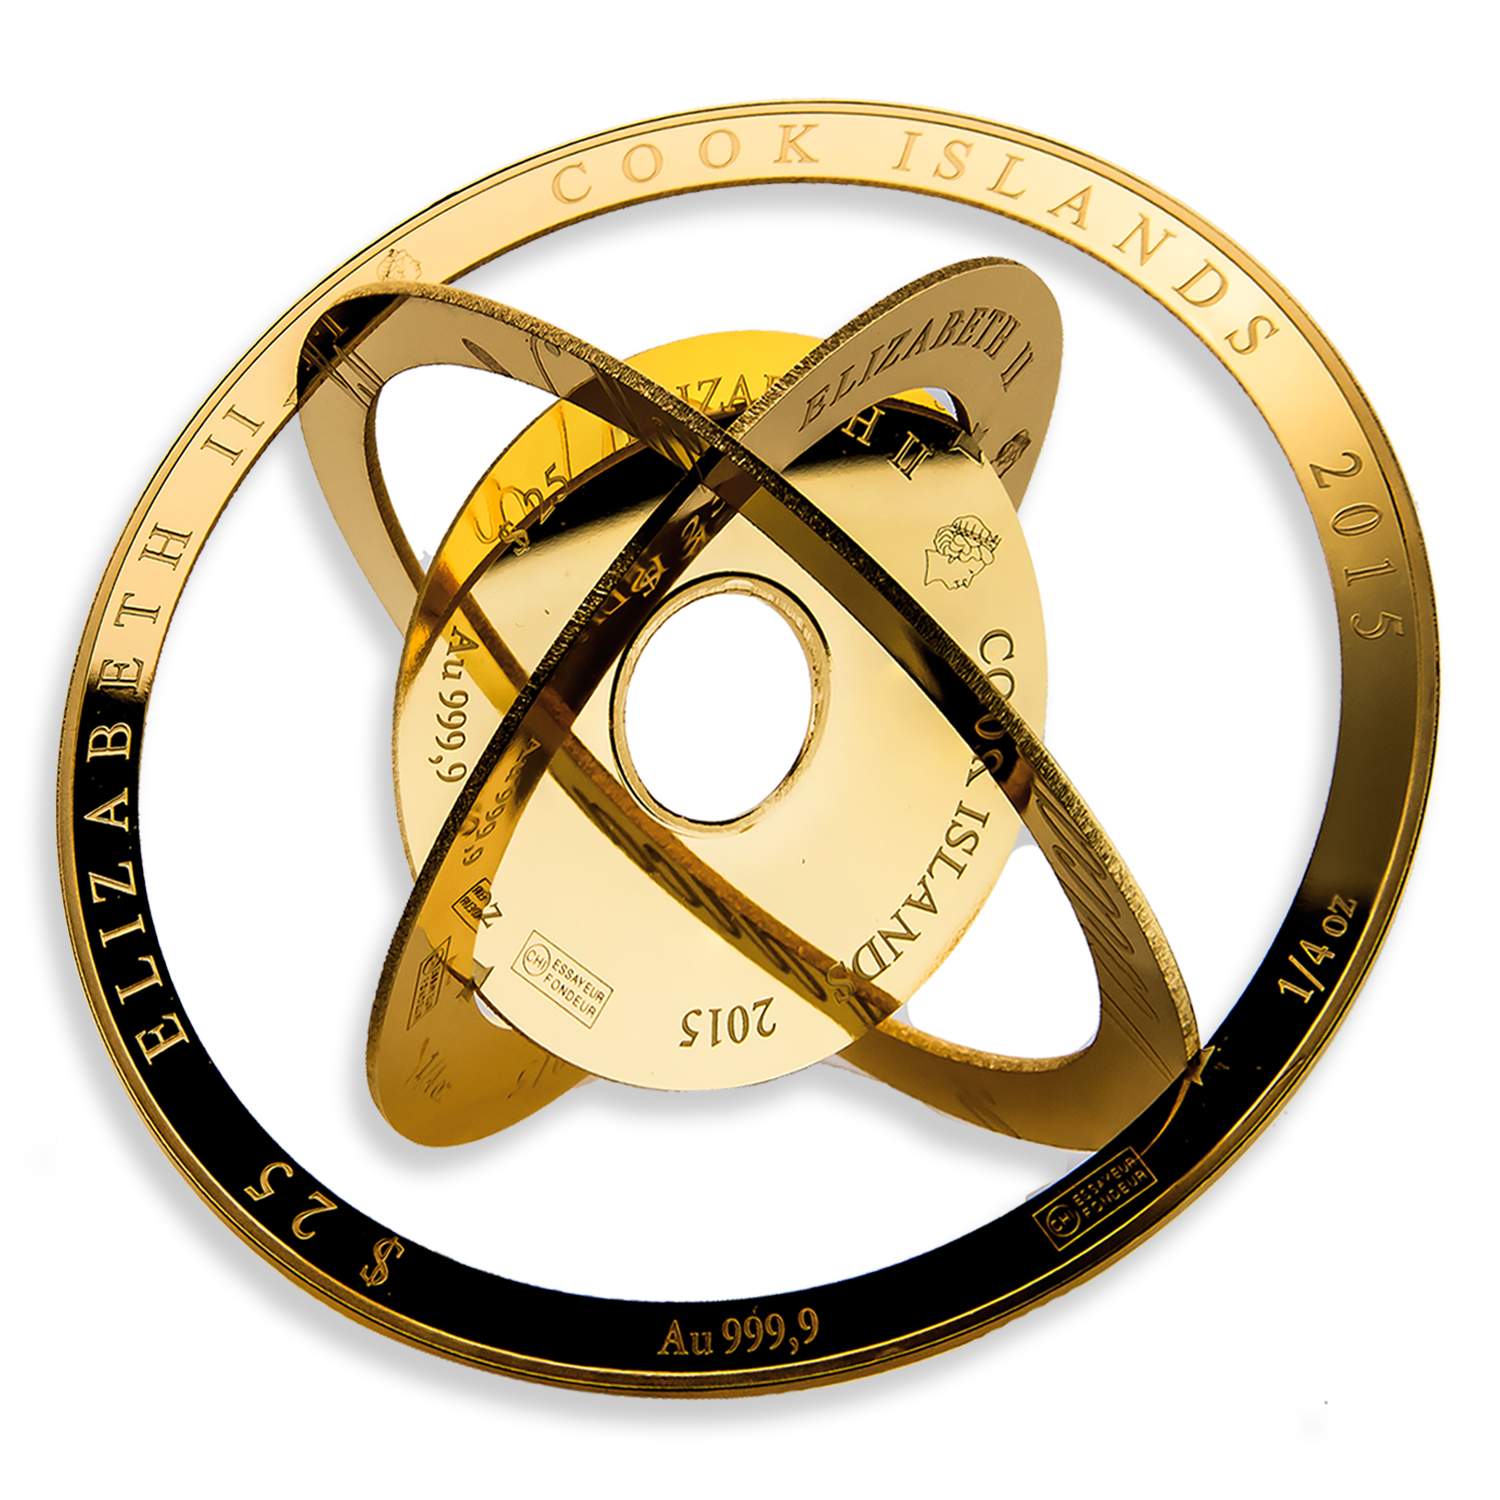 2015 1 oz Cook Islands $100 Gold Armillary Coin - Valcambi